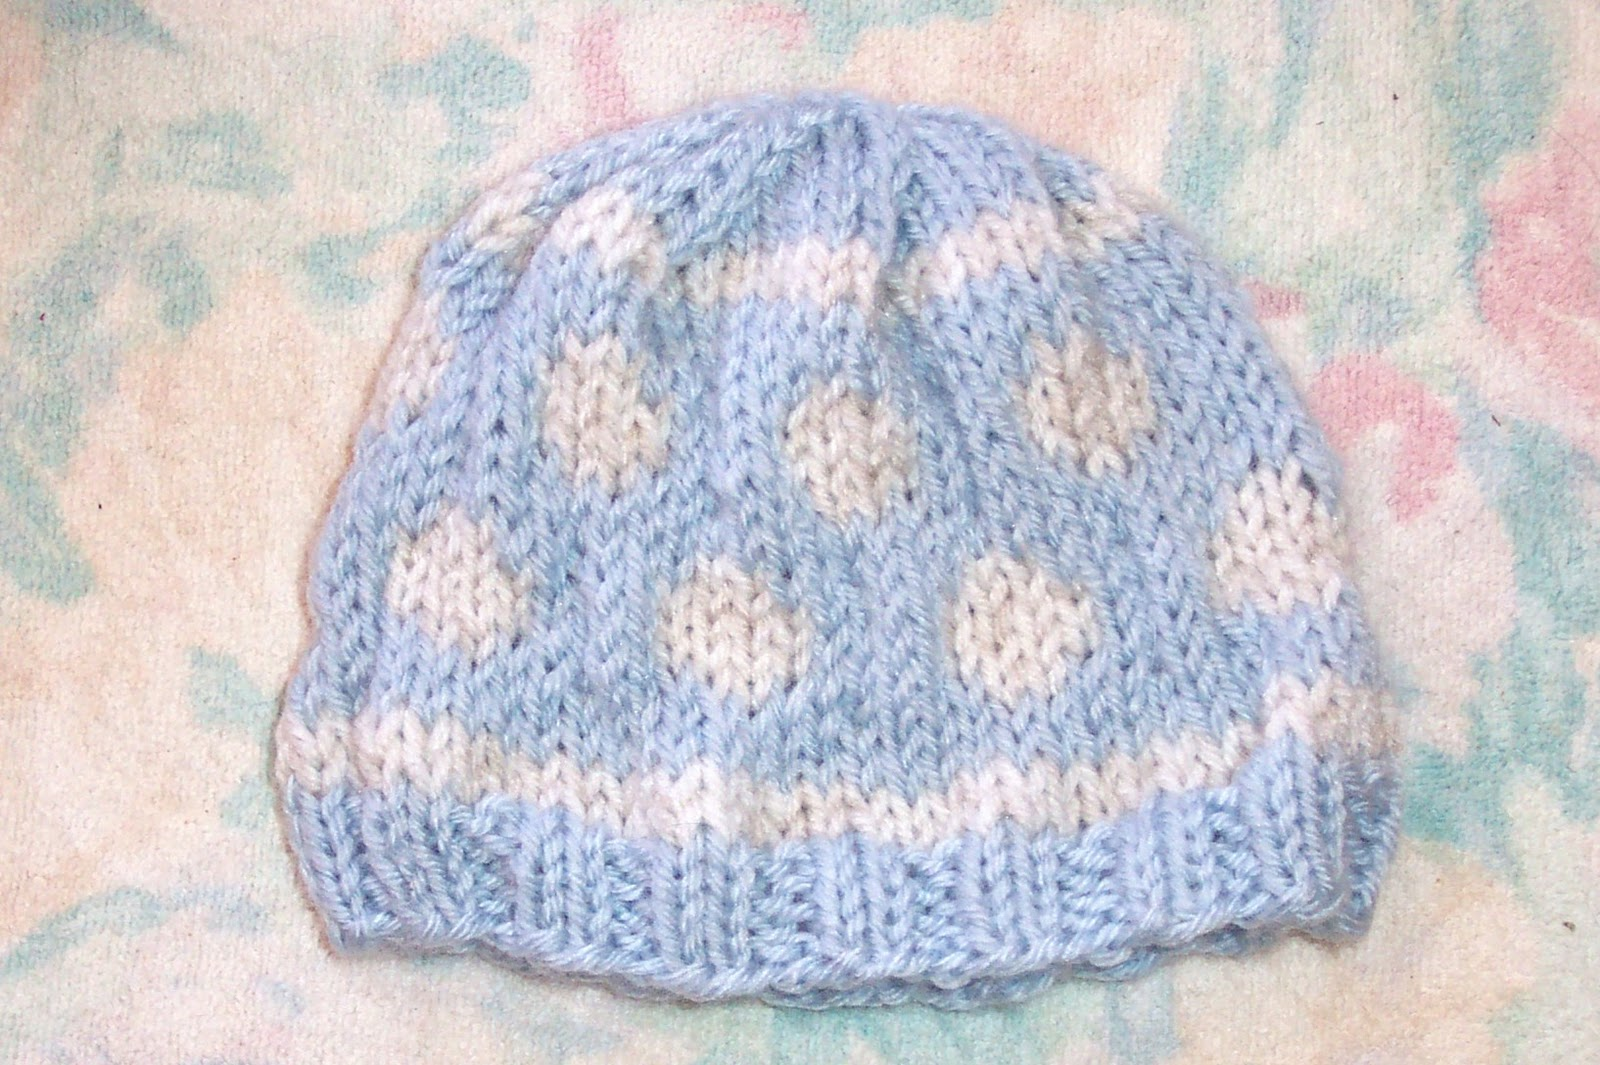 SmoothFox Crochet and Knit: SmoothFoxs Baby Bubbles Knit Hat - Free Pattern